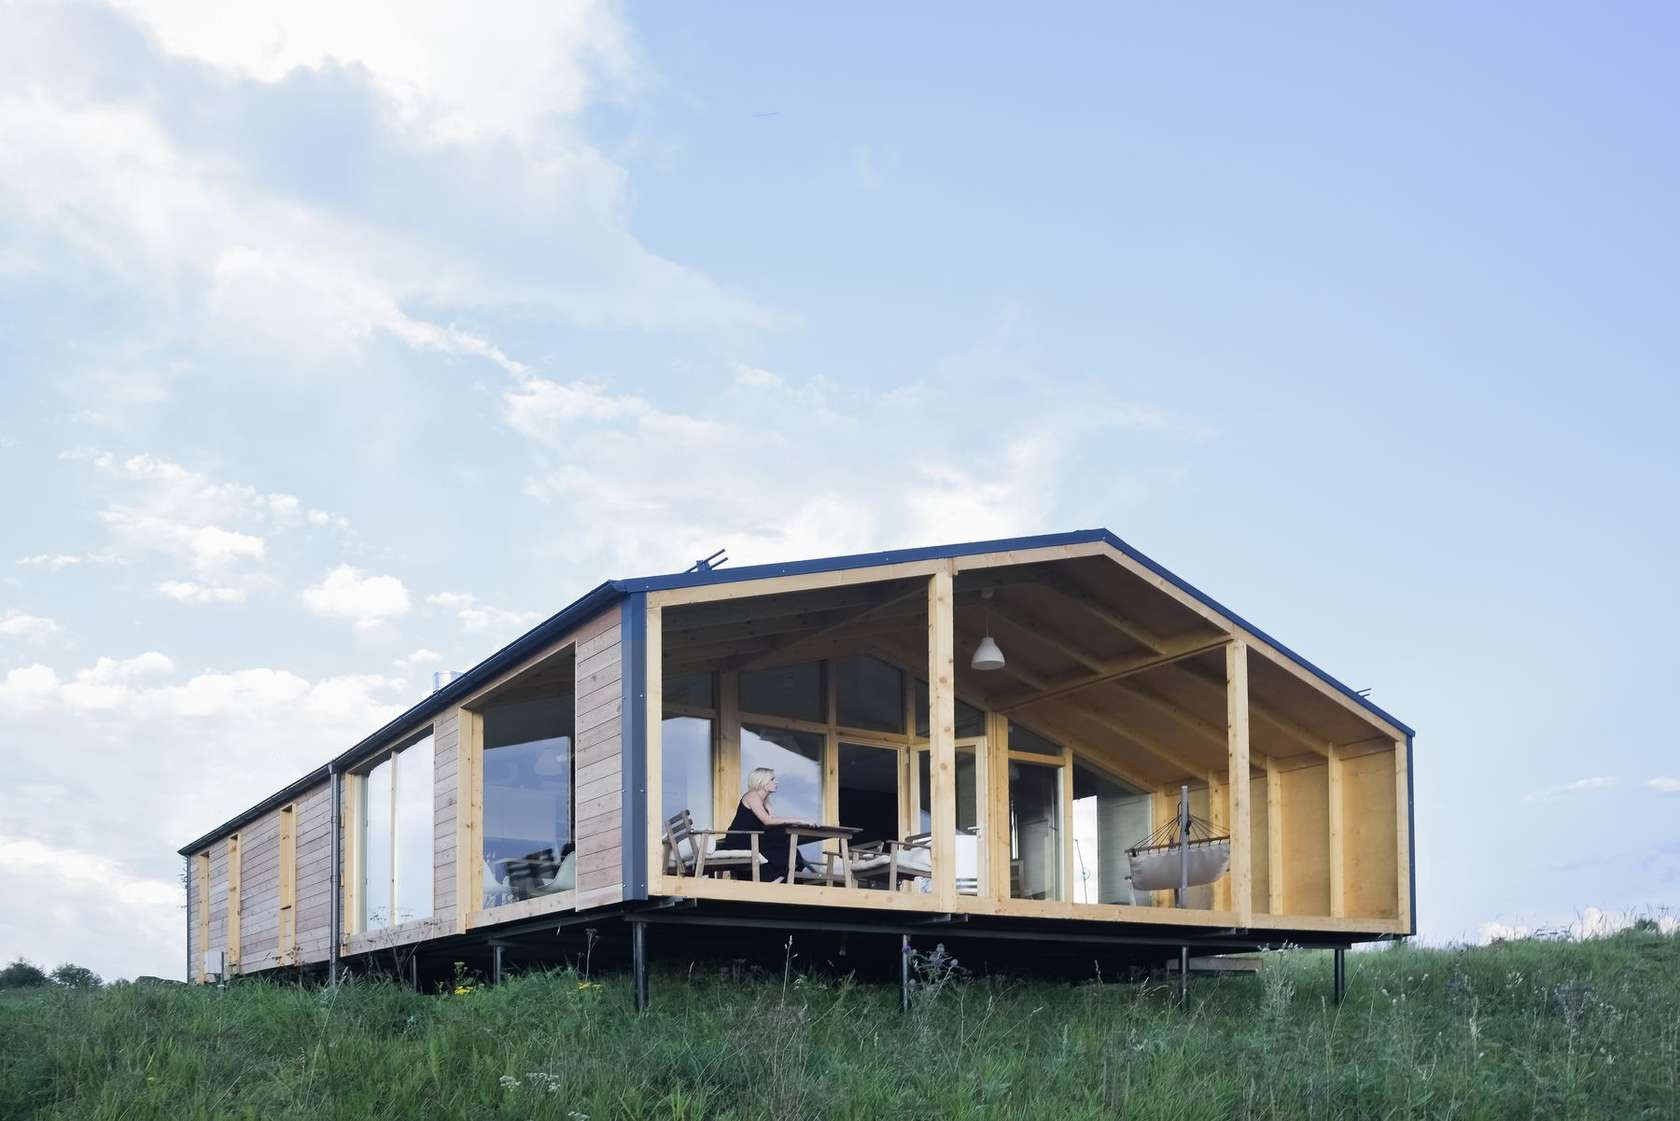 Premanufactured Homes prefab - curbed